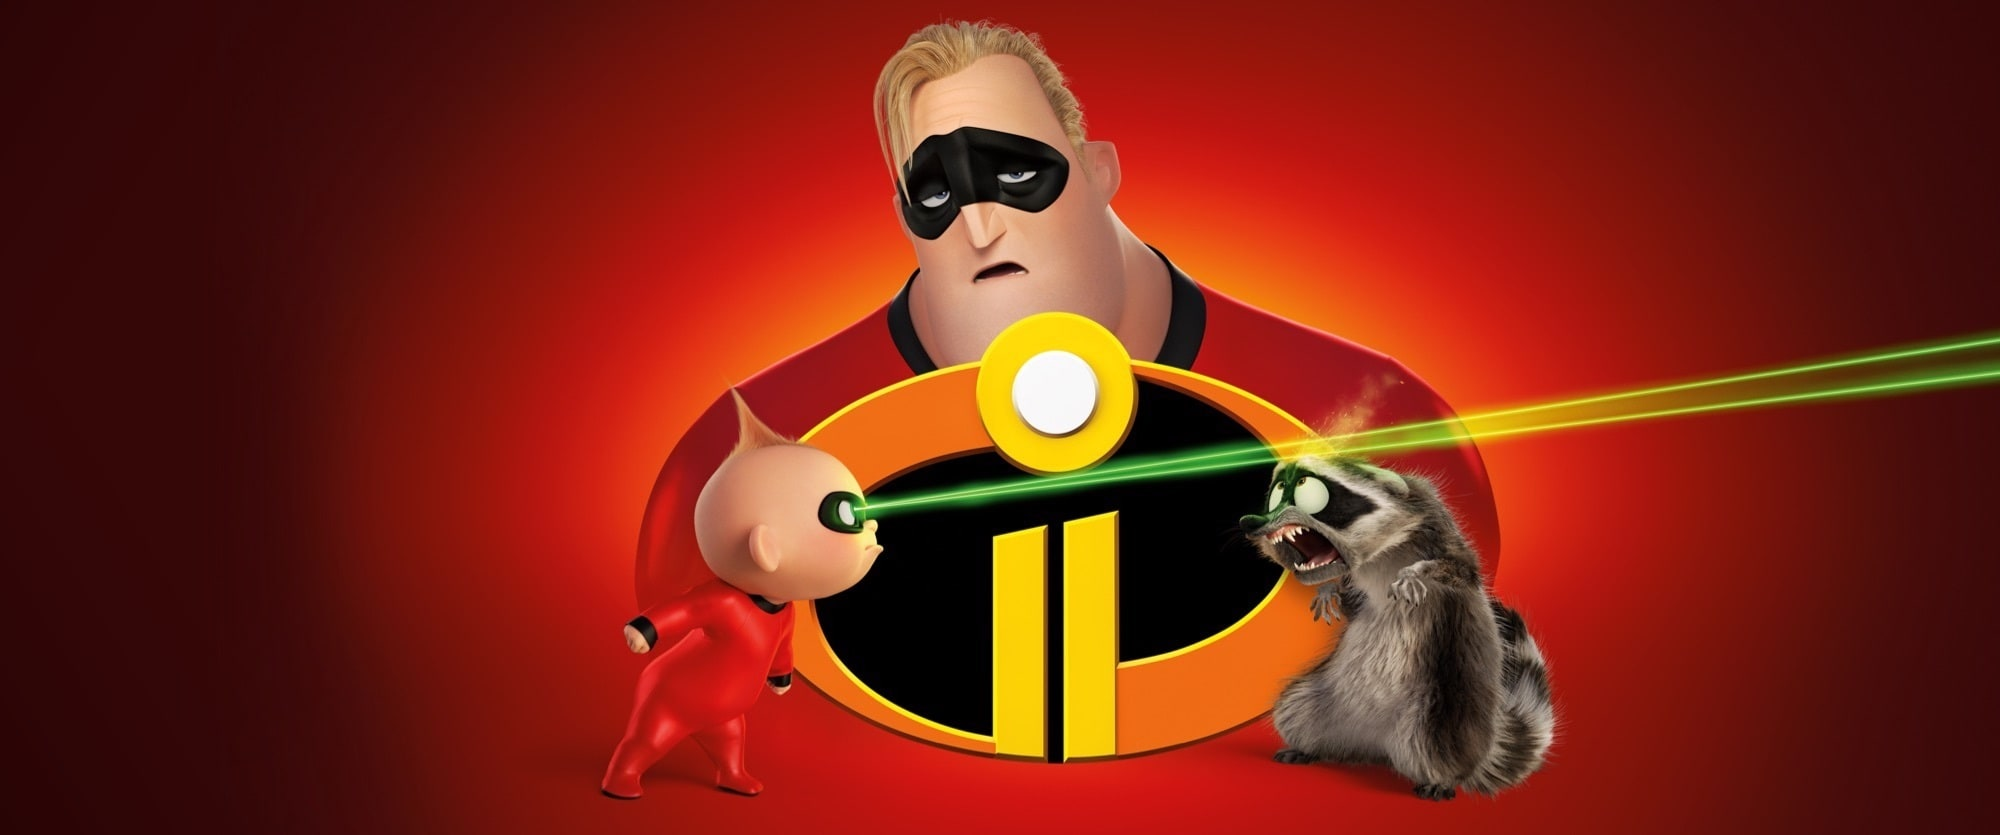 The Incredibles 2 | Trailer